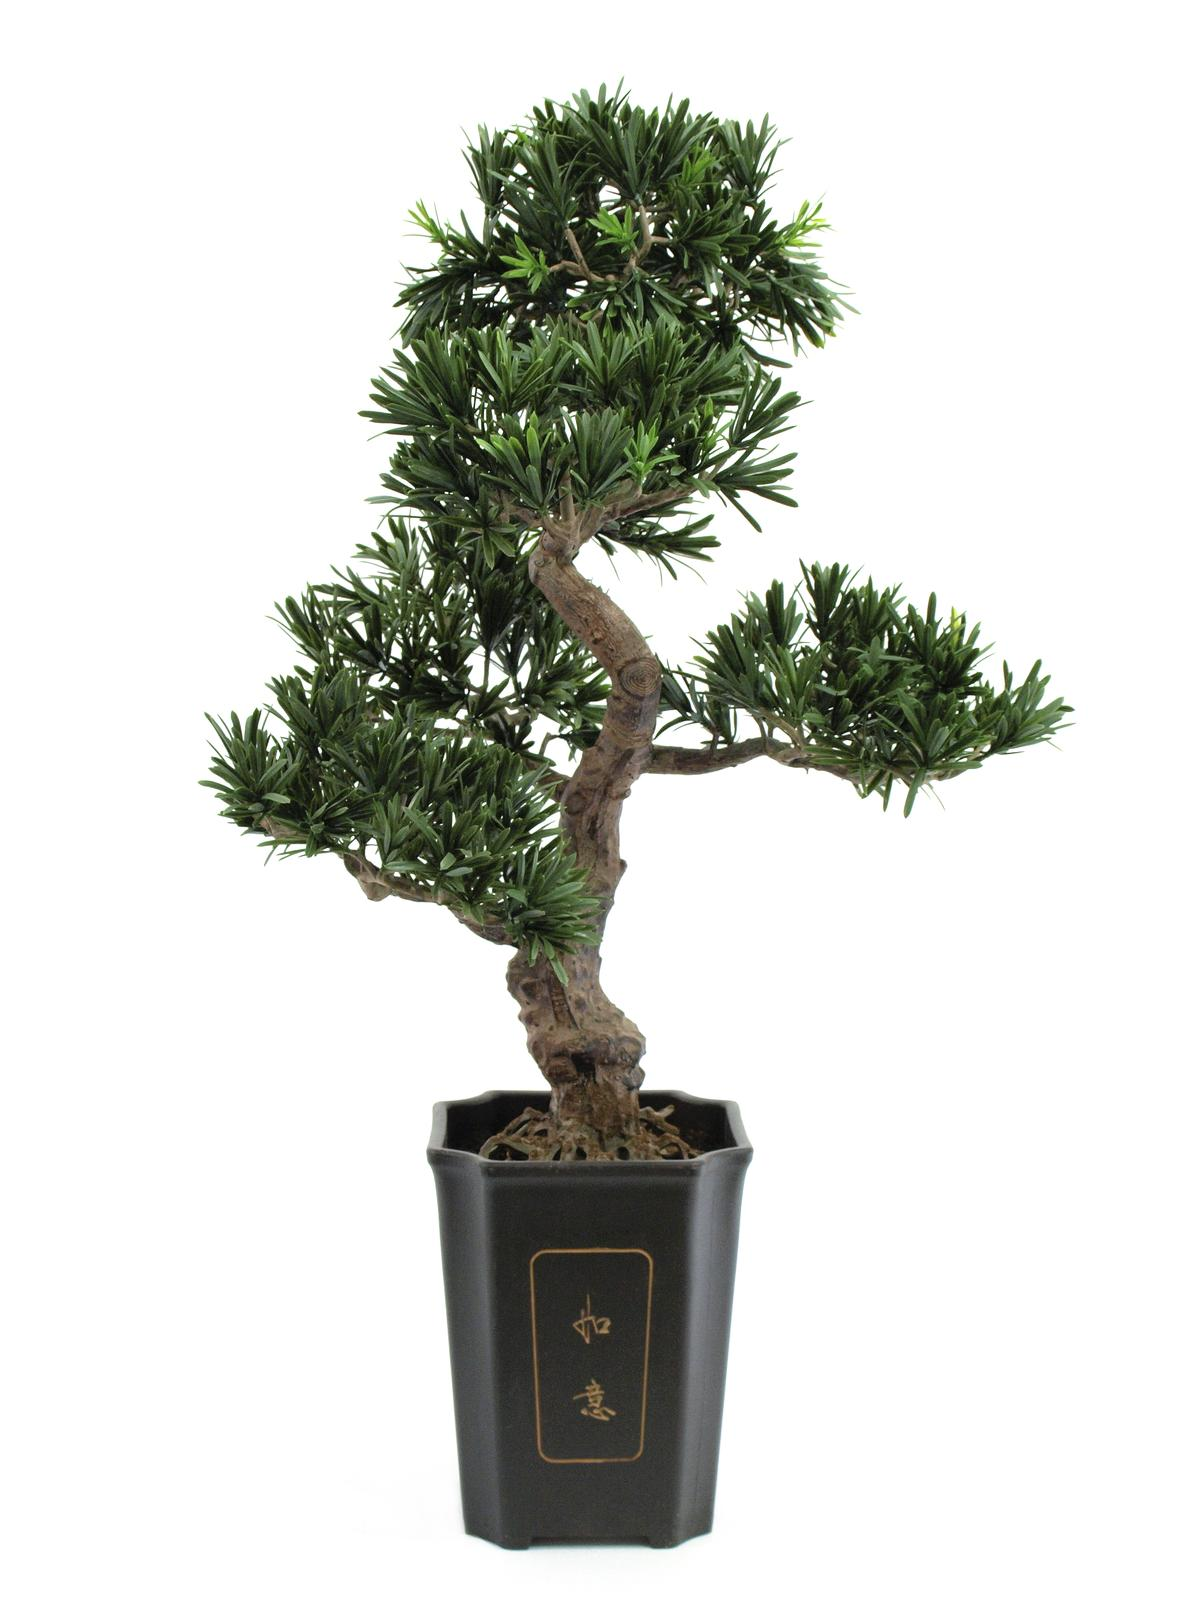 EUROPALMS Bonsai podocarpus pianta artificiale, 80cm